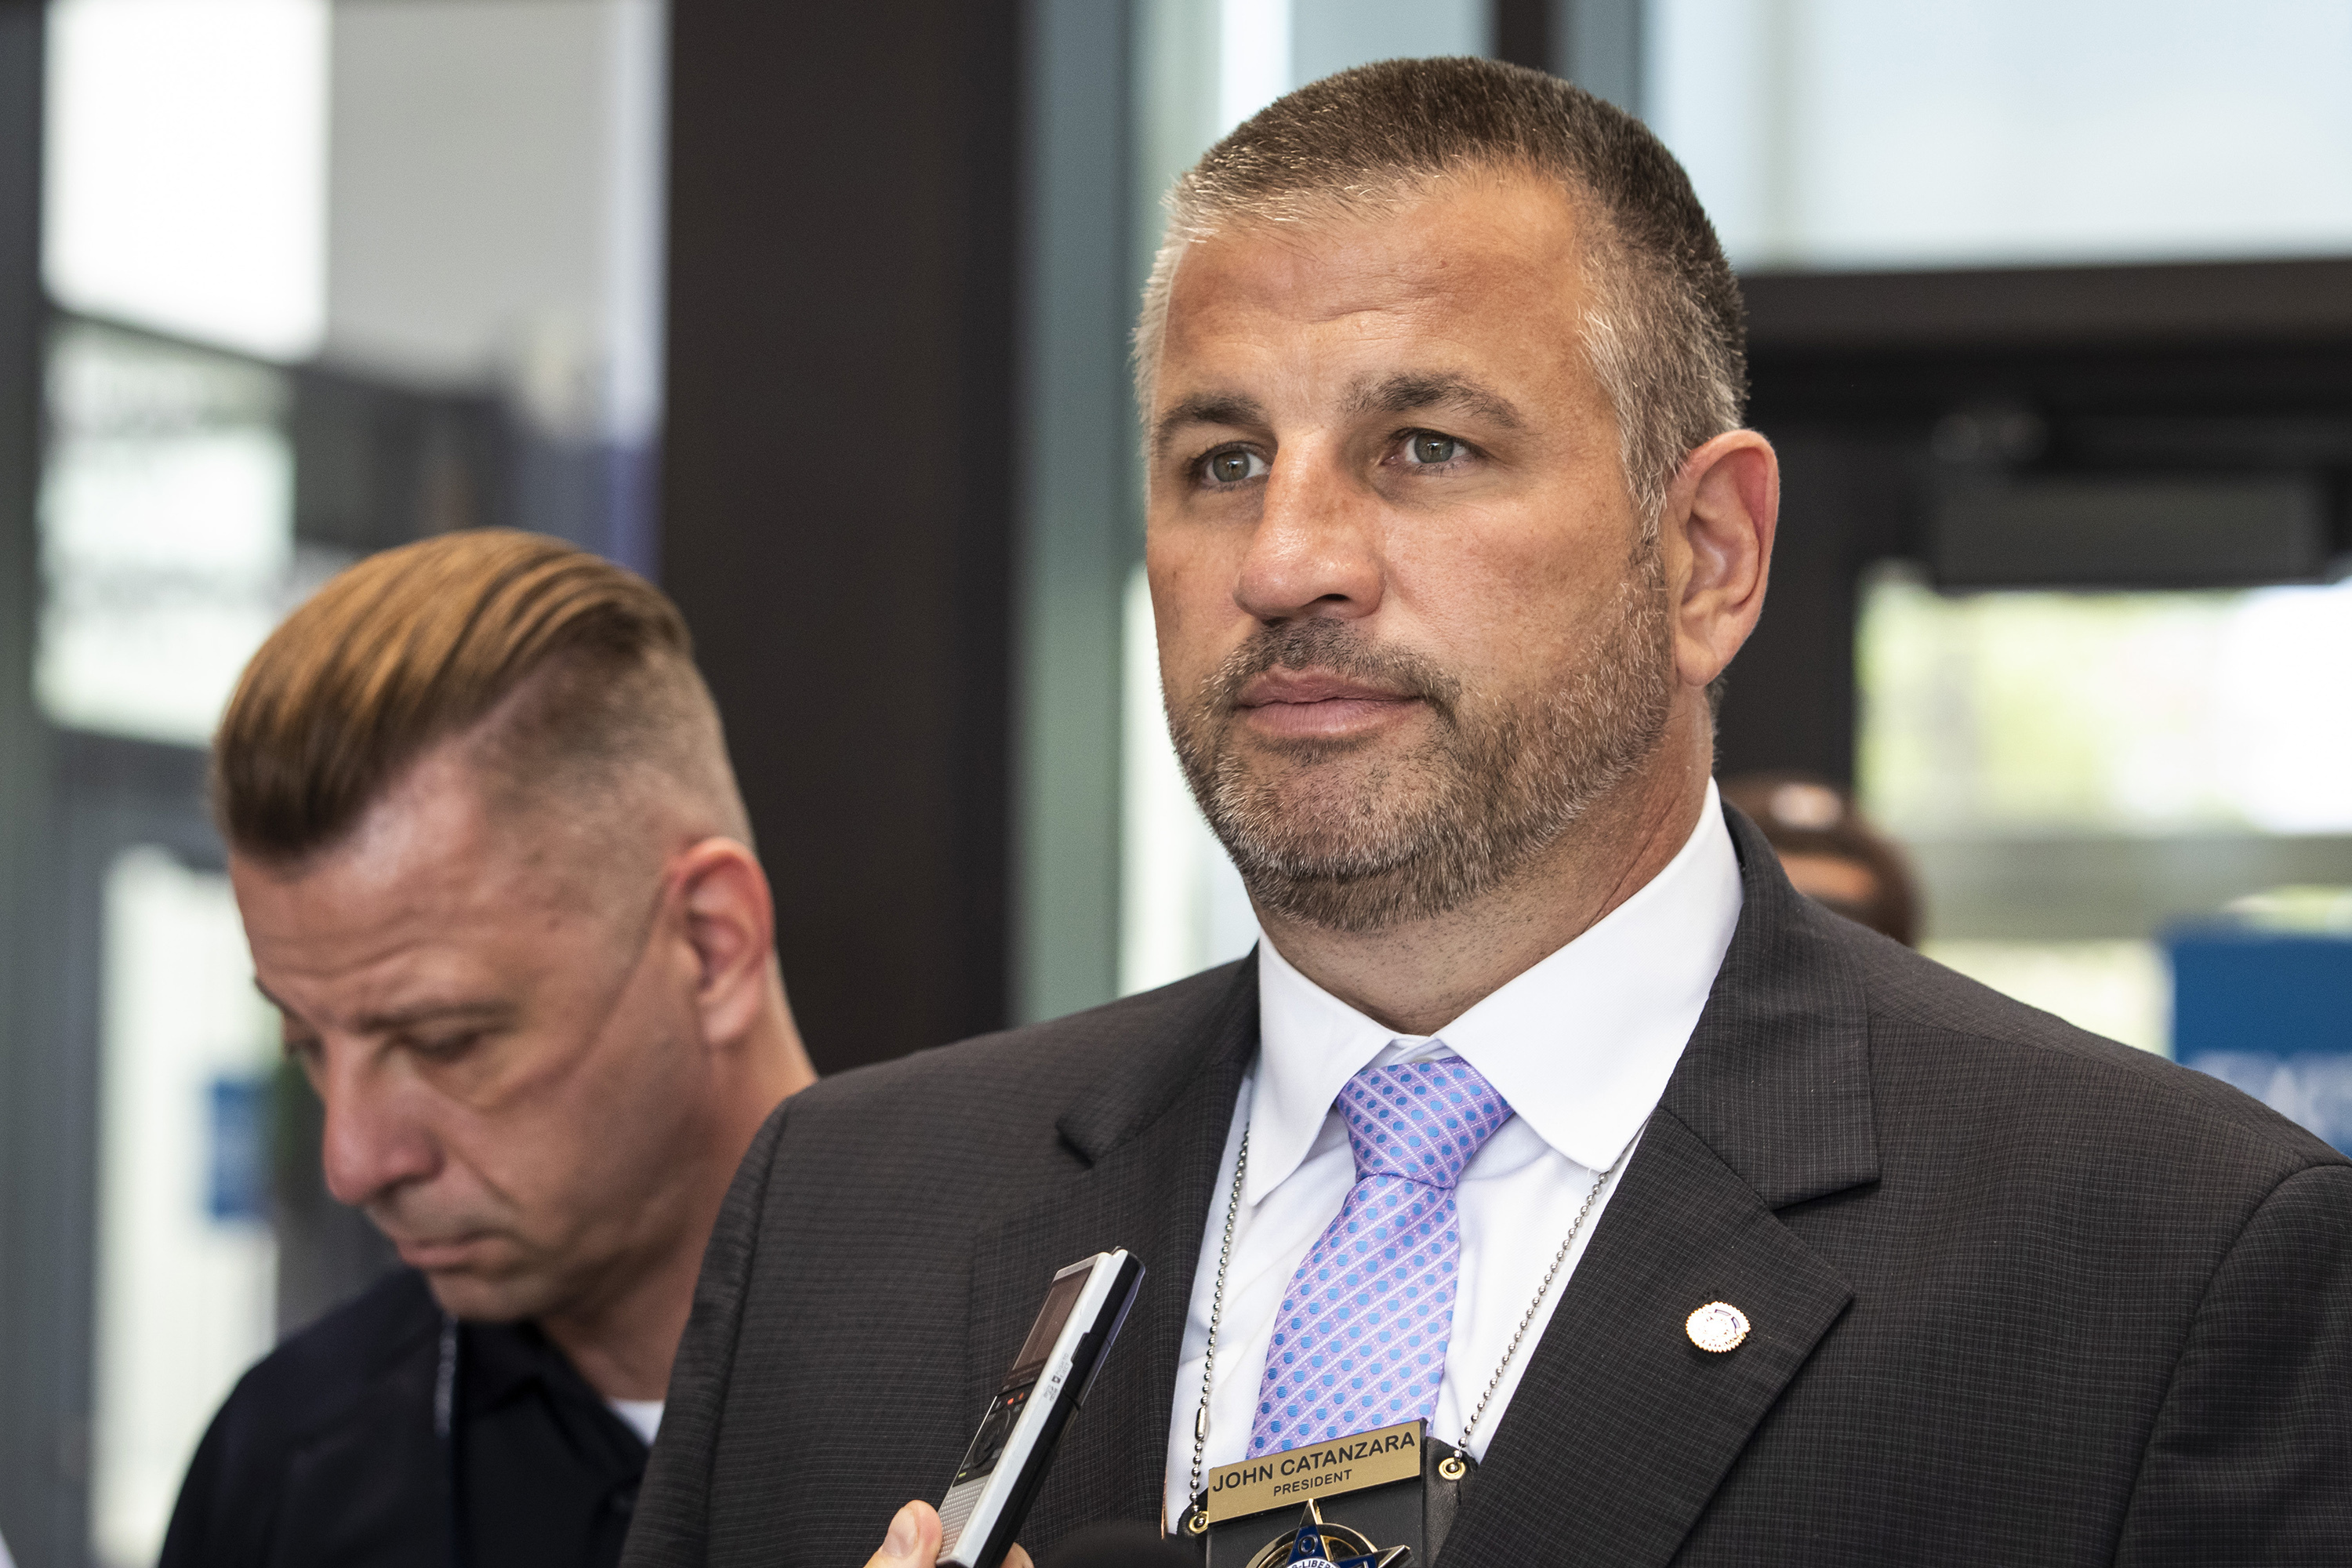 In this Aug. 10, 2021, file photo, Fraternal Order of Police Lodge 7 President John Catanzara speaks to reporters at the Leighton Criminal Courthouse.